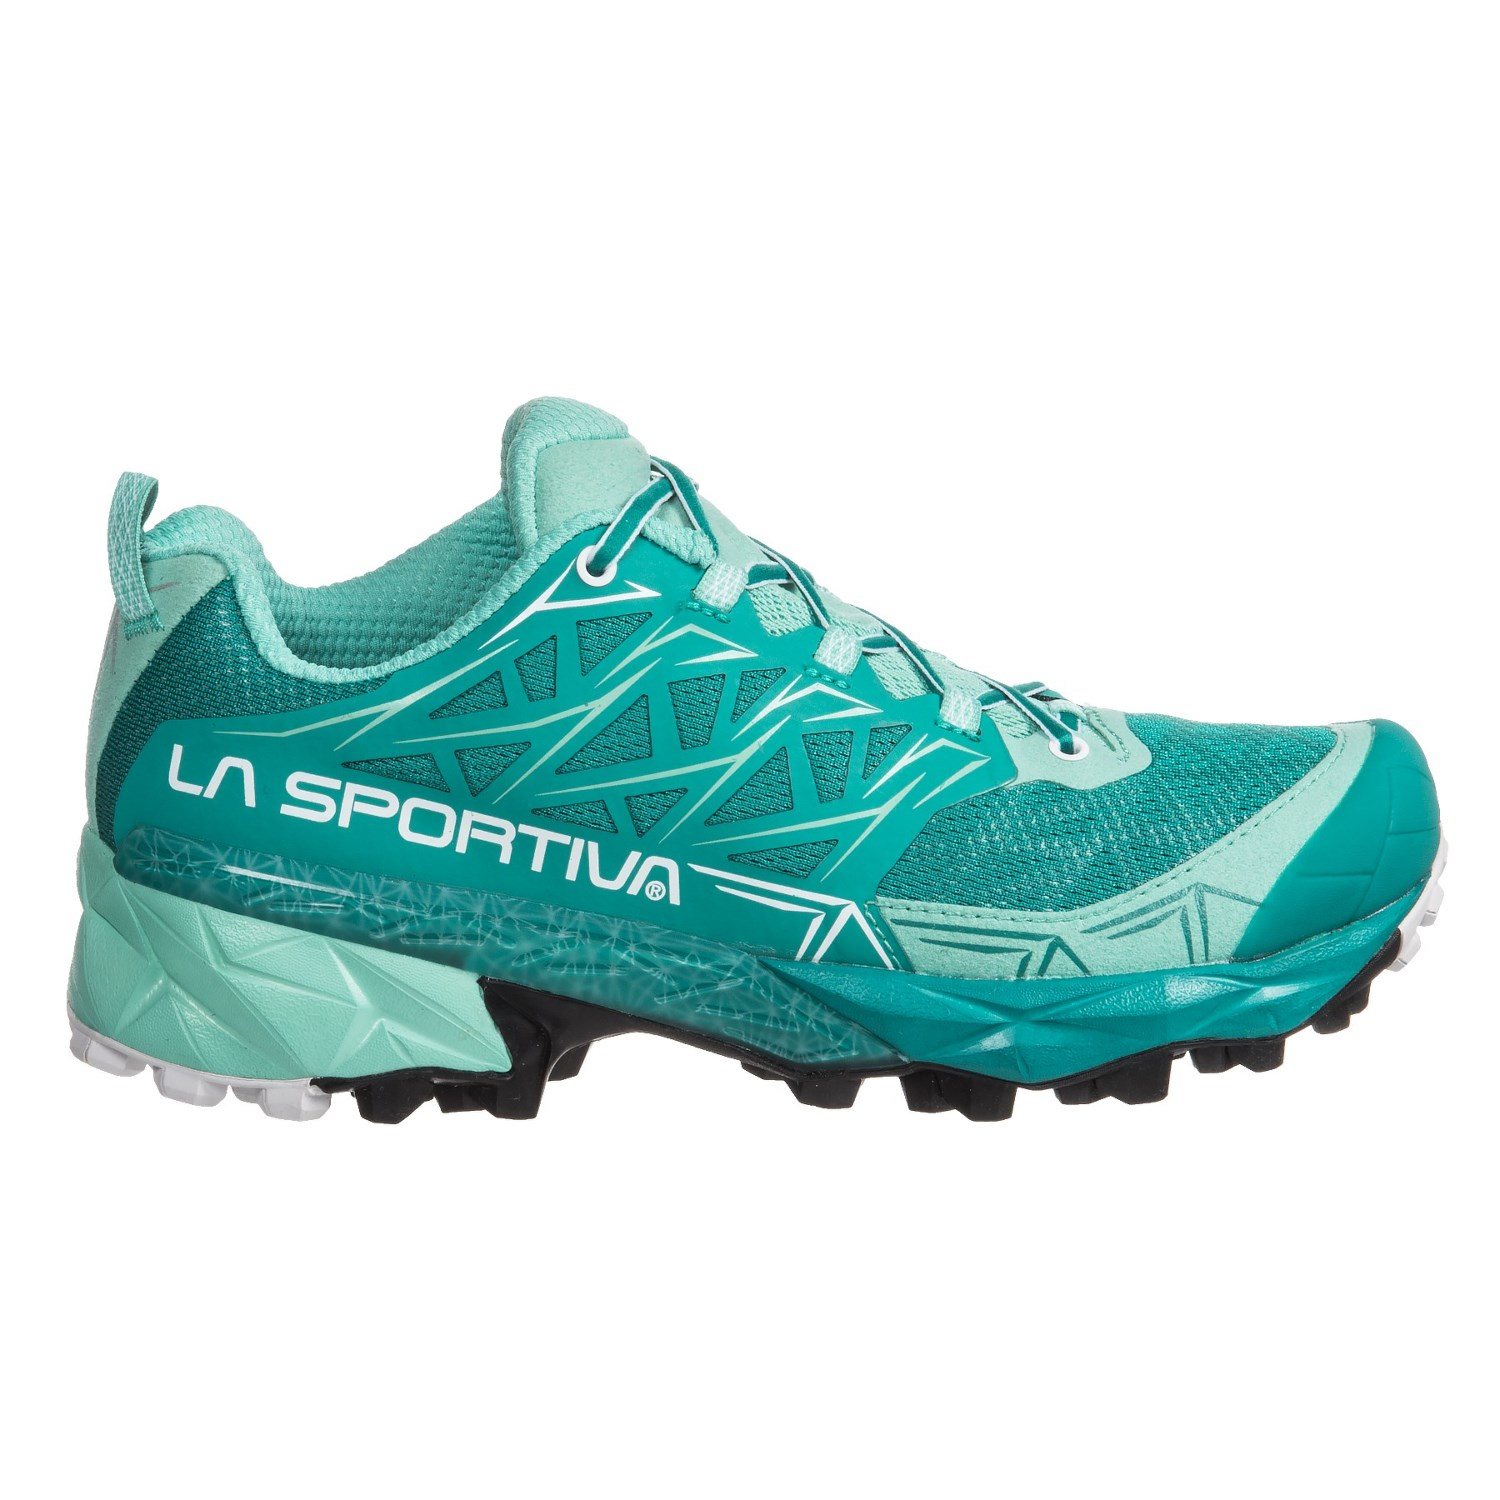 2102bc8cba6 La Sportiva Akyra Trail Running Shoes (For Women) - Save 57%